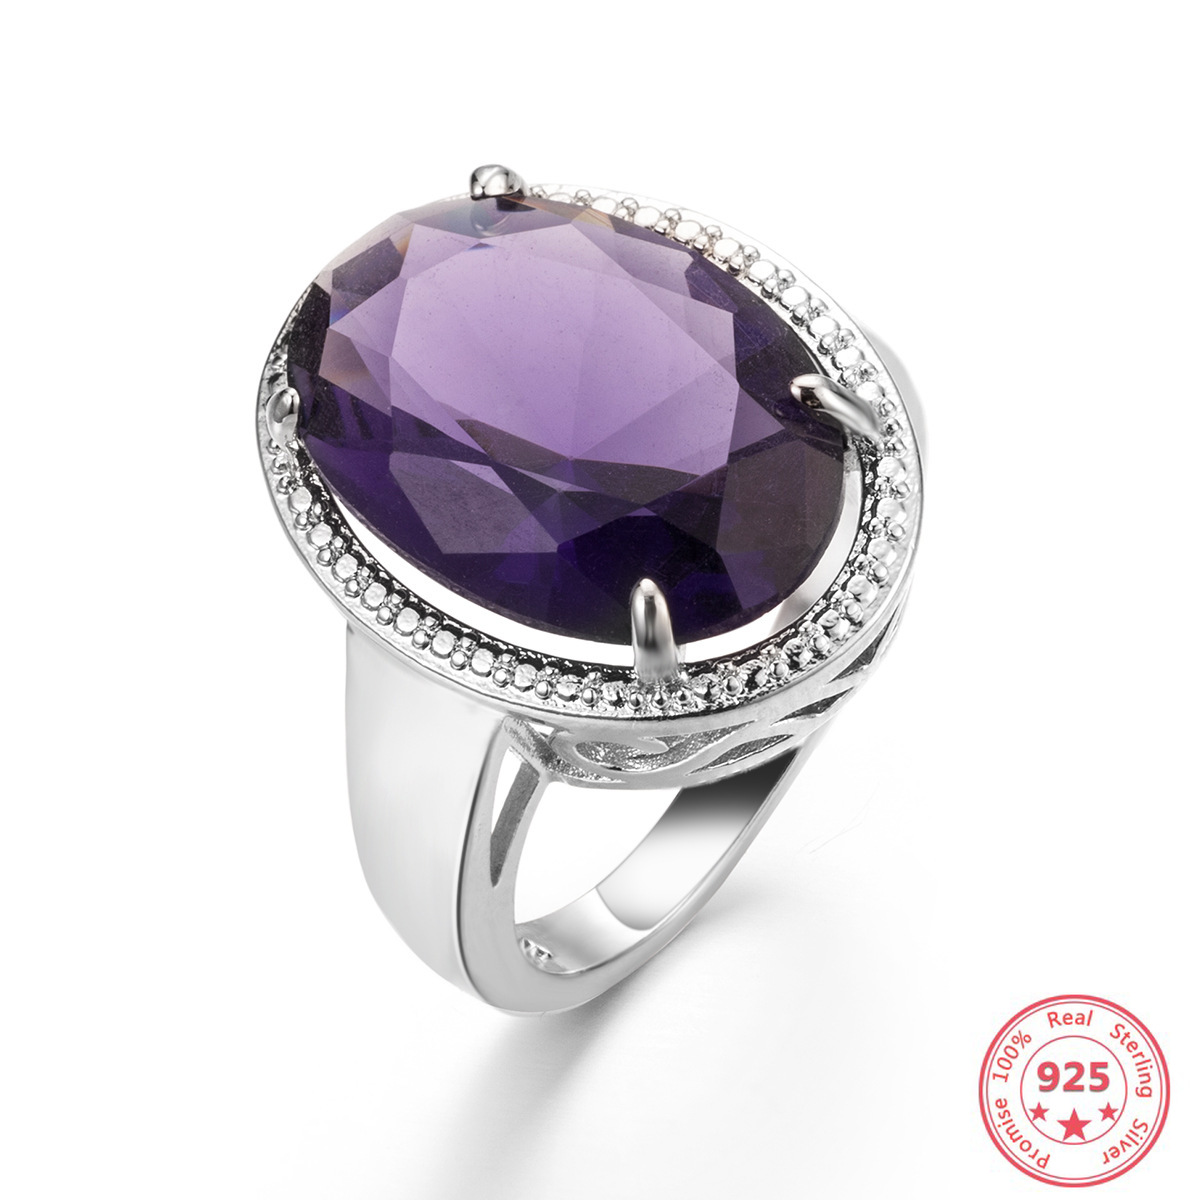 925 Silver Color Natural Amethyst Ring for Women Peridot Bizuteria Anillos Purple Topaz Natural Gemstone 925 Jewelry Rings